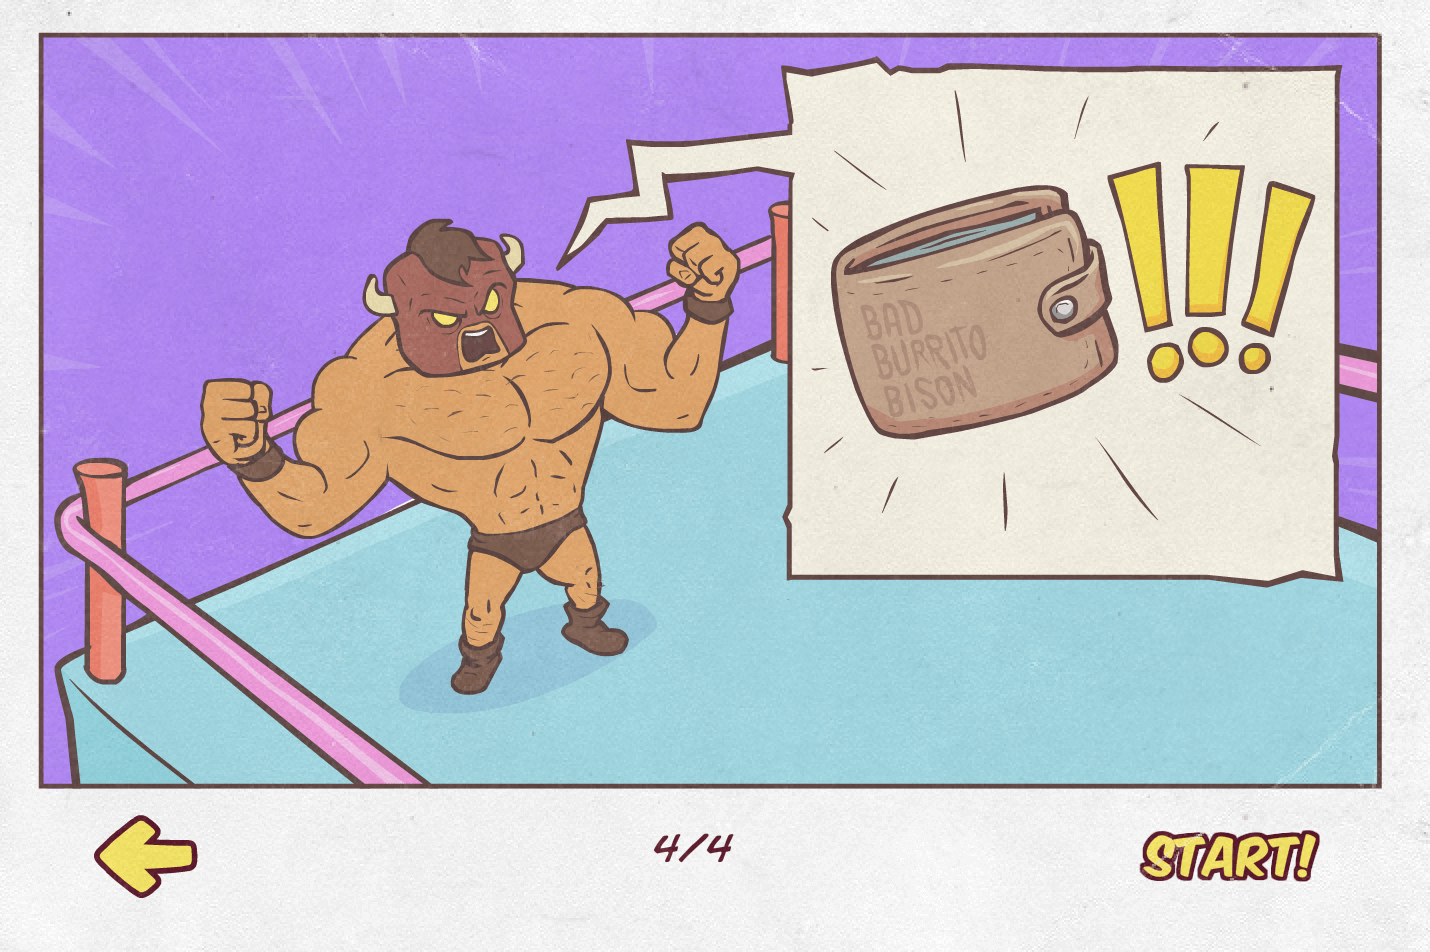 burrito bison in the ring shouting wallet